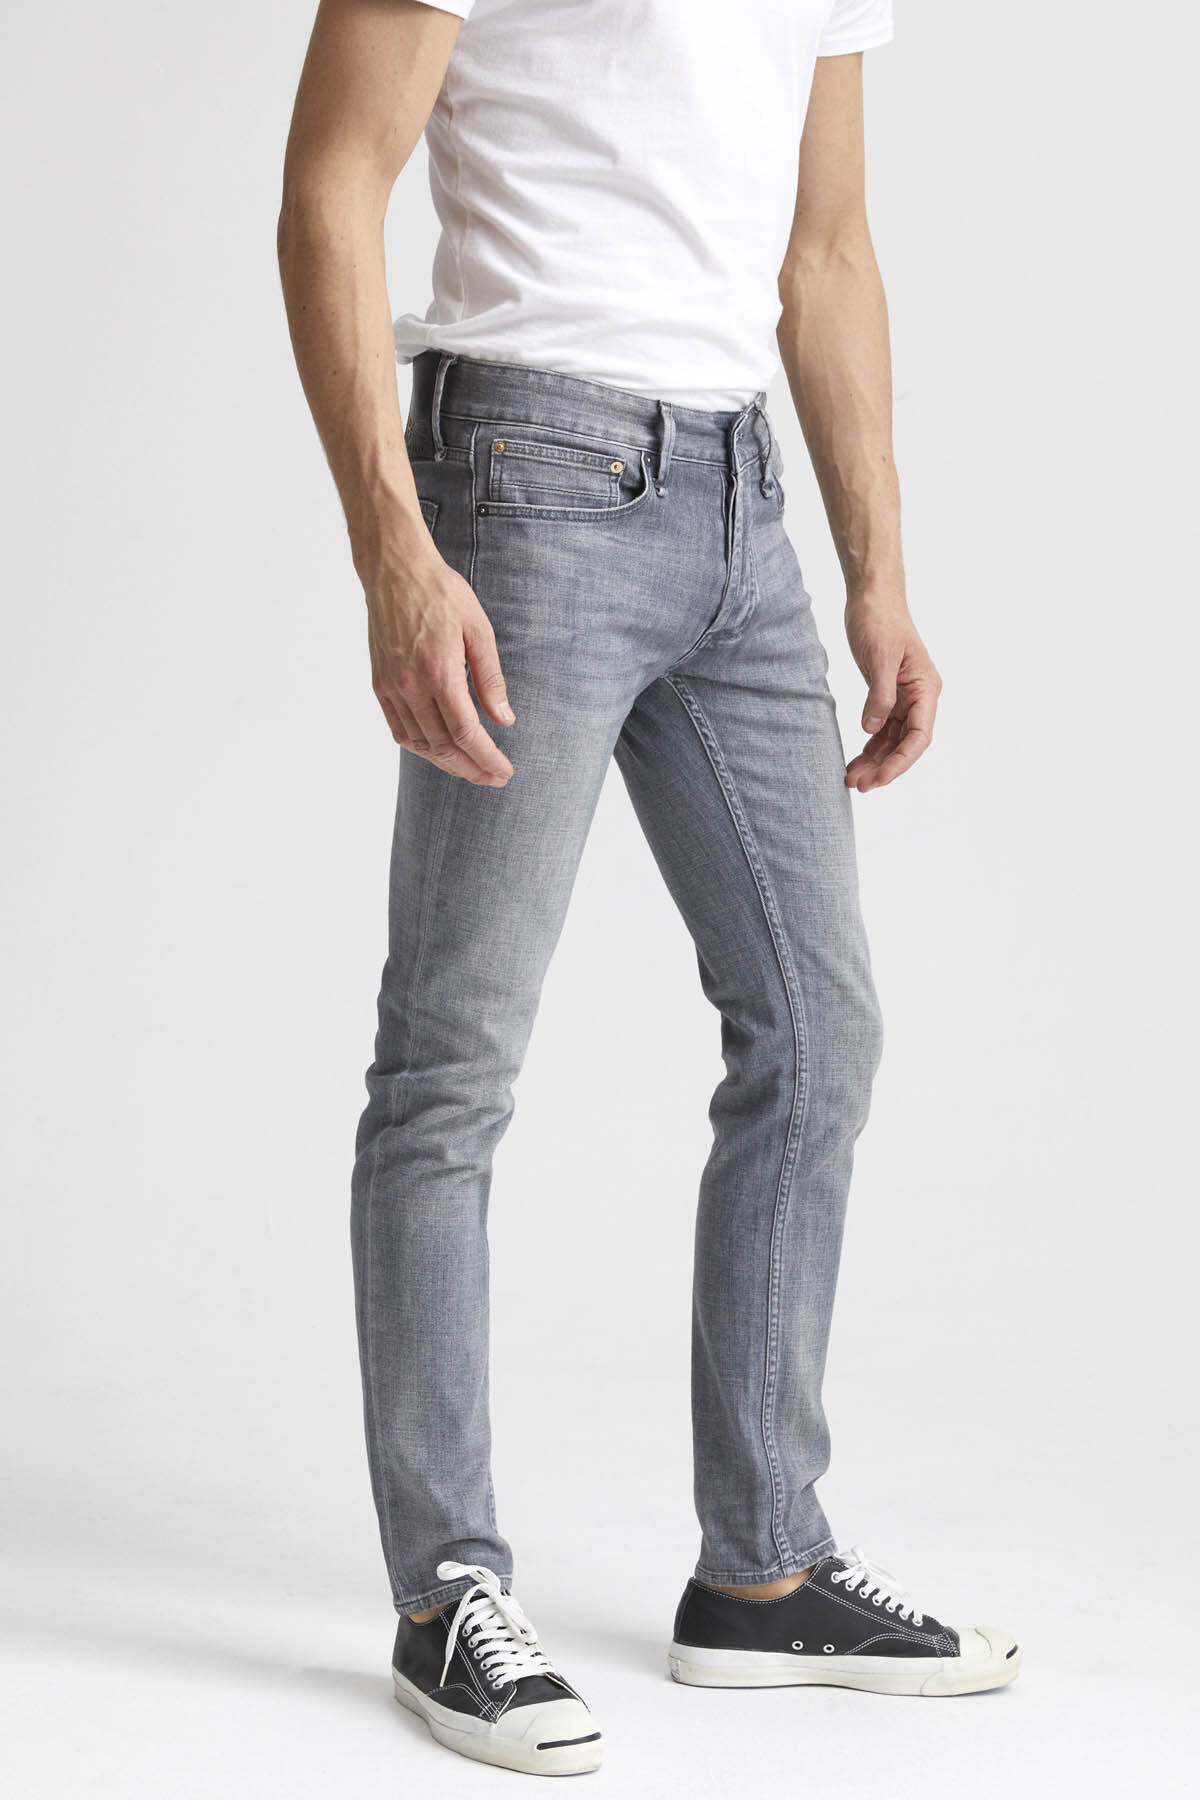 BOLT Lefthand, Lightweight Denim - Skinny Fit